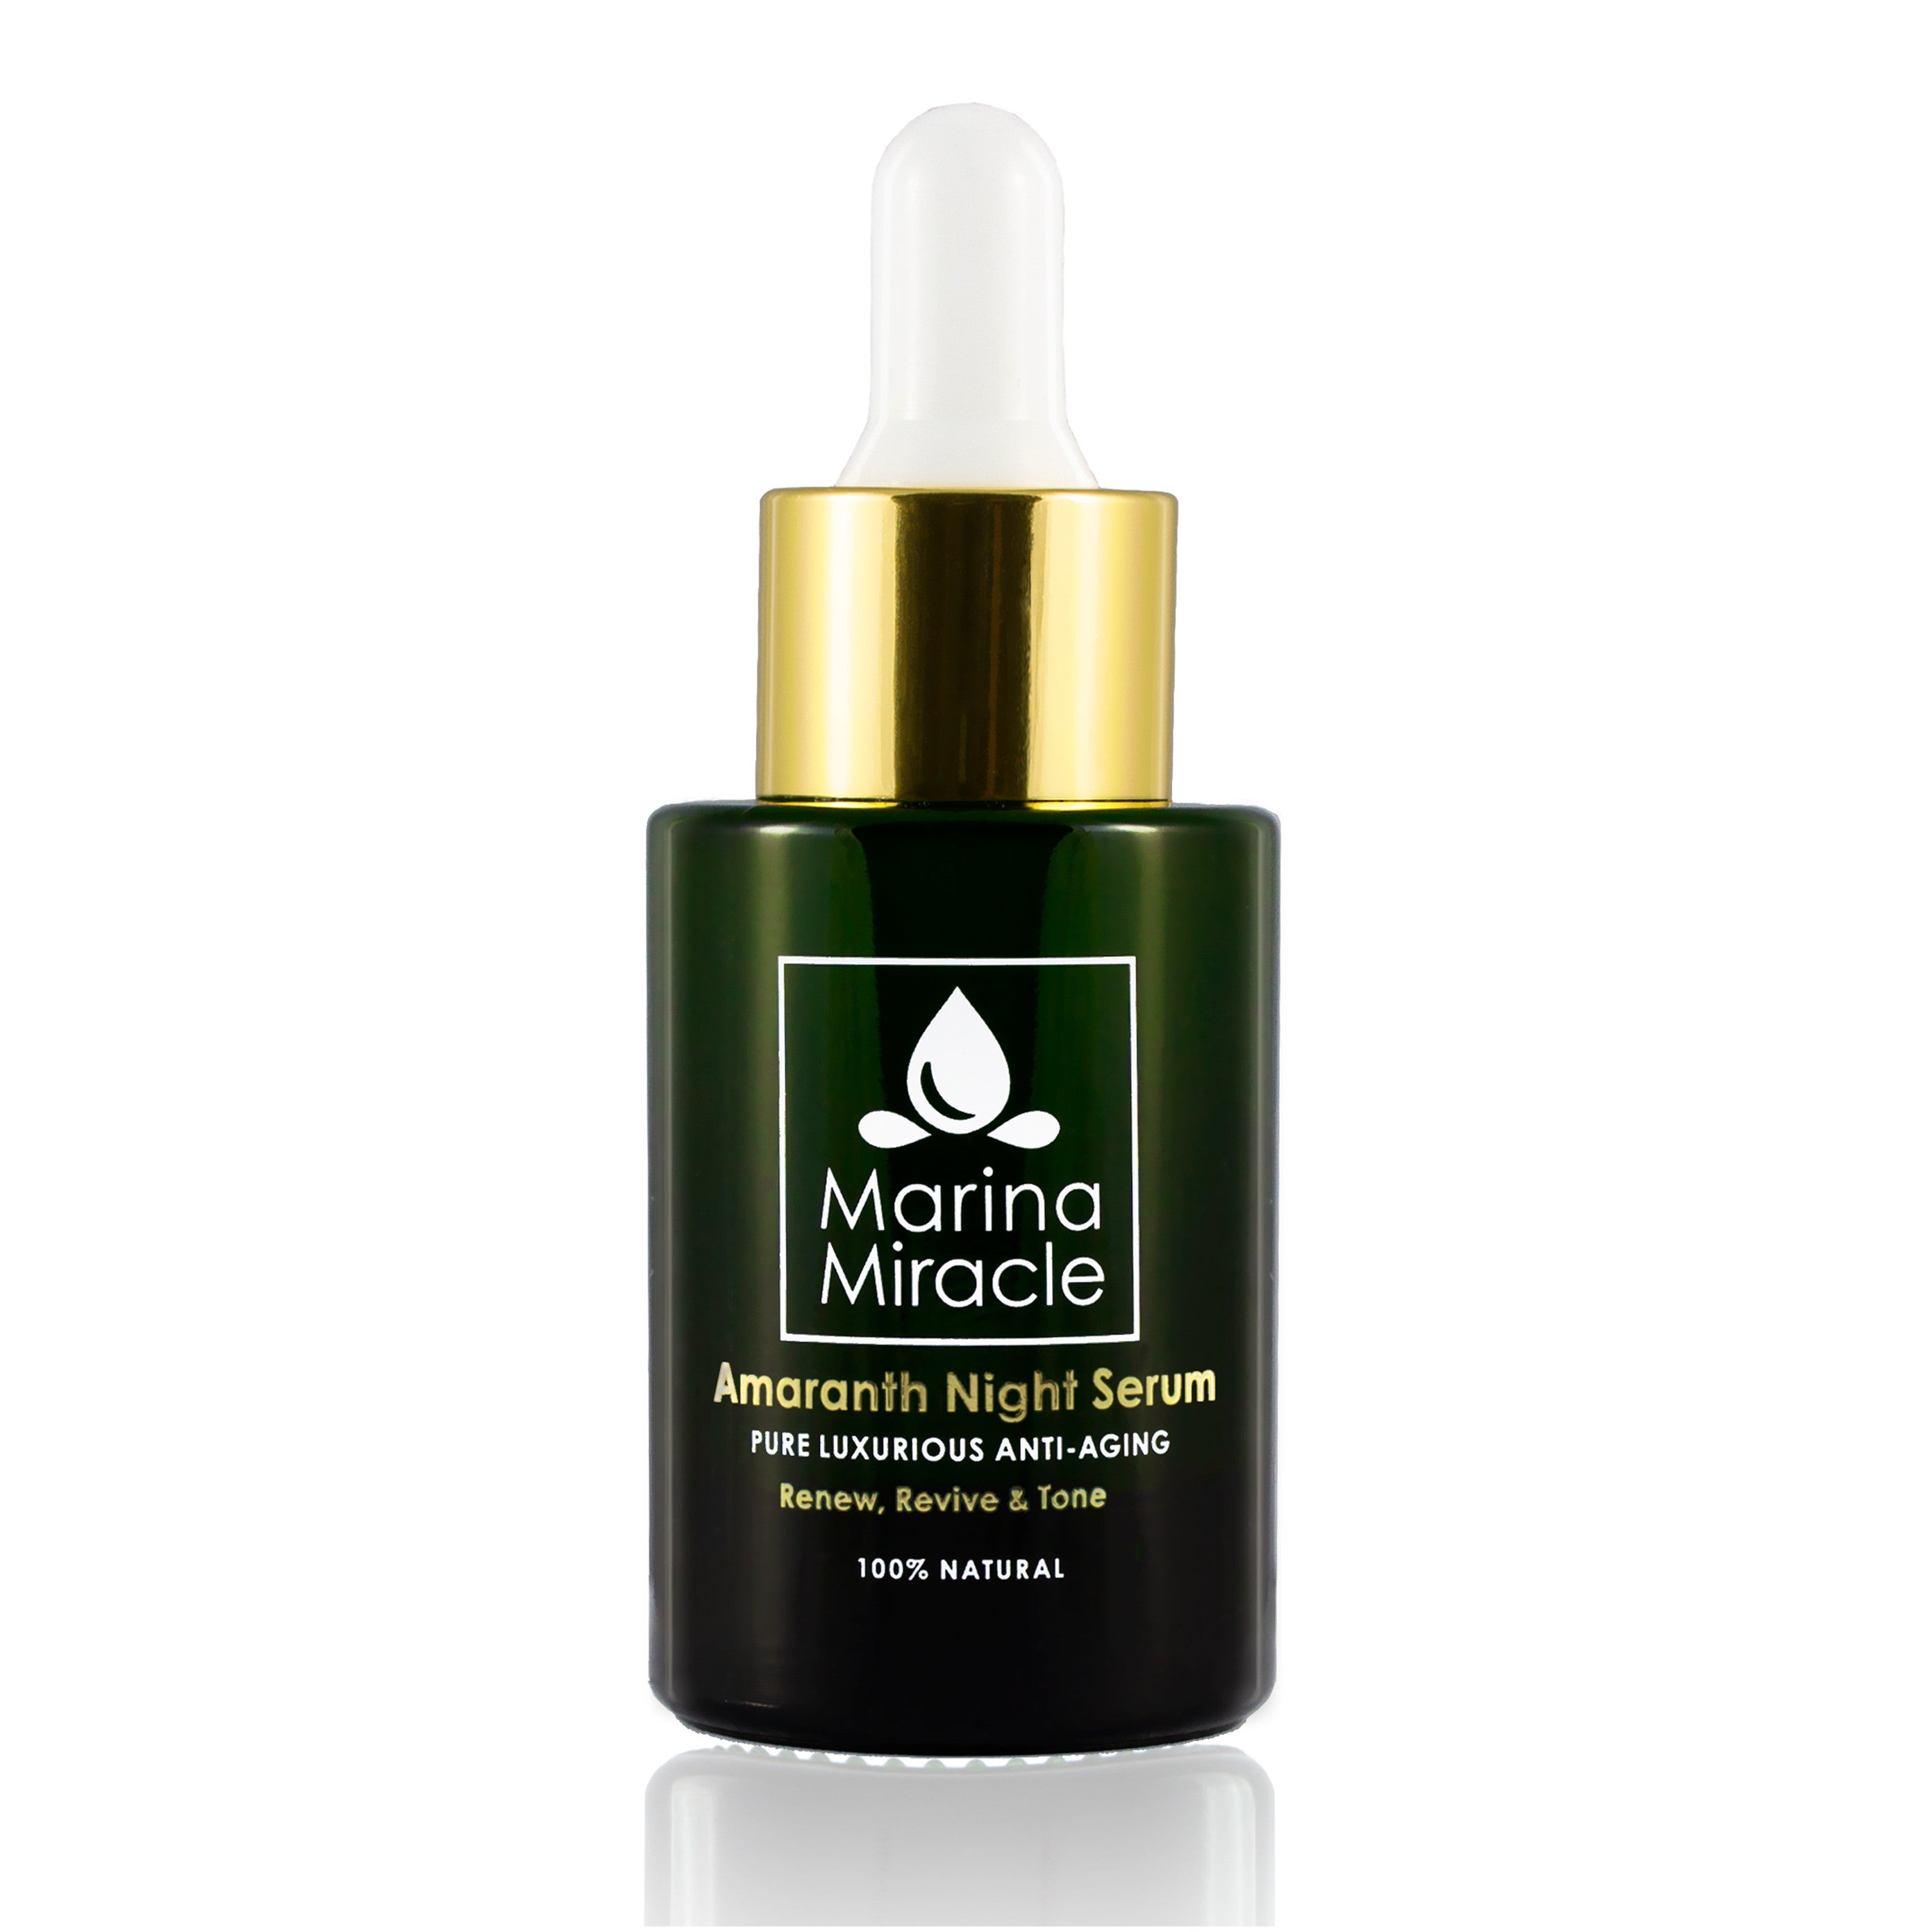 Amaranth Night Serum green glass bottle with dropper